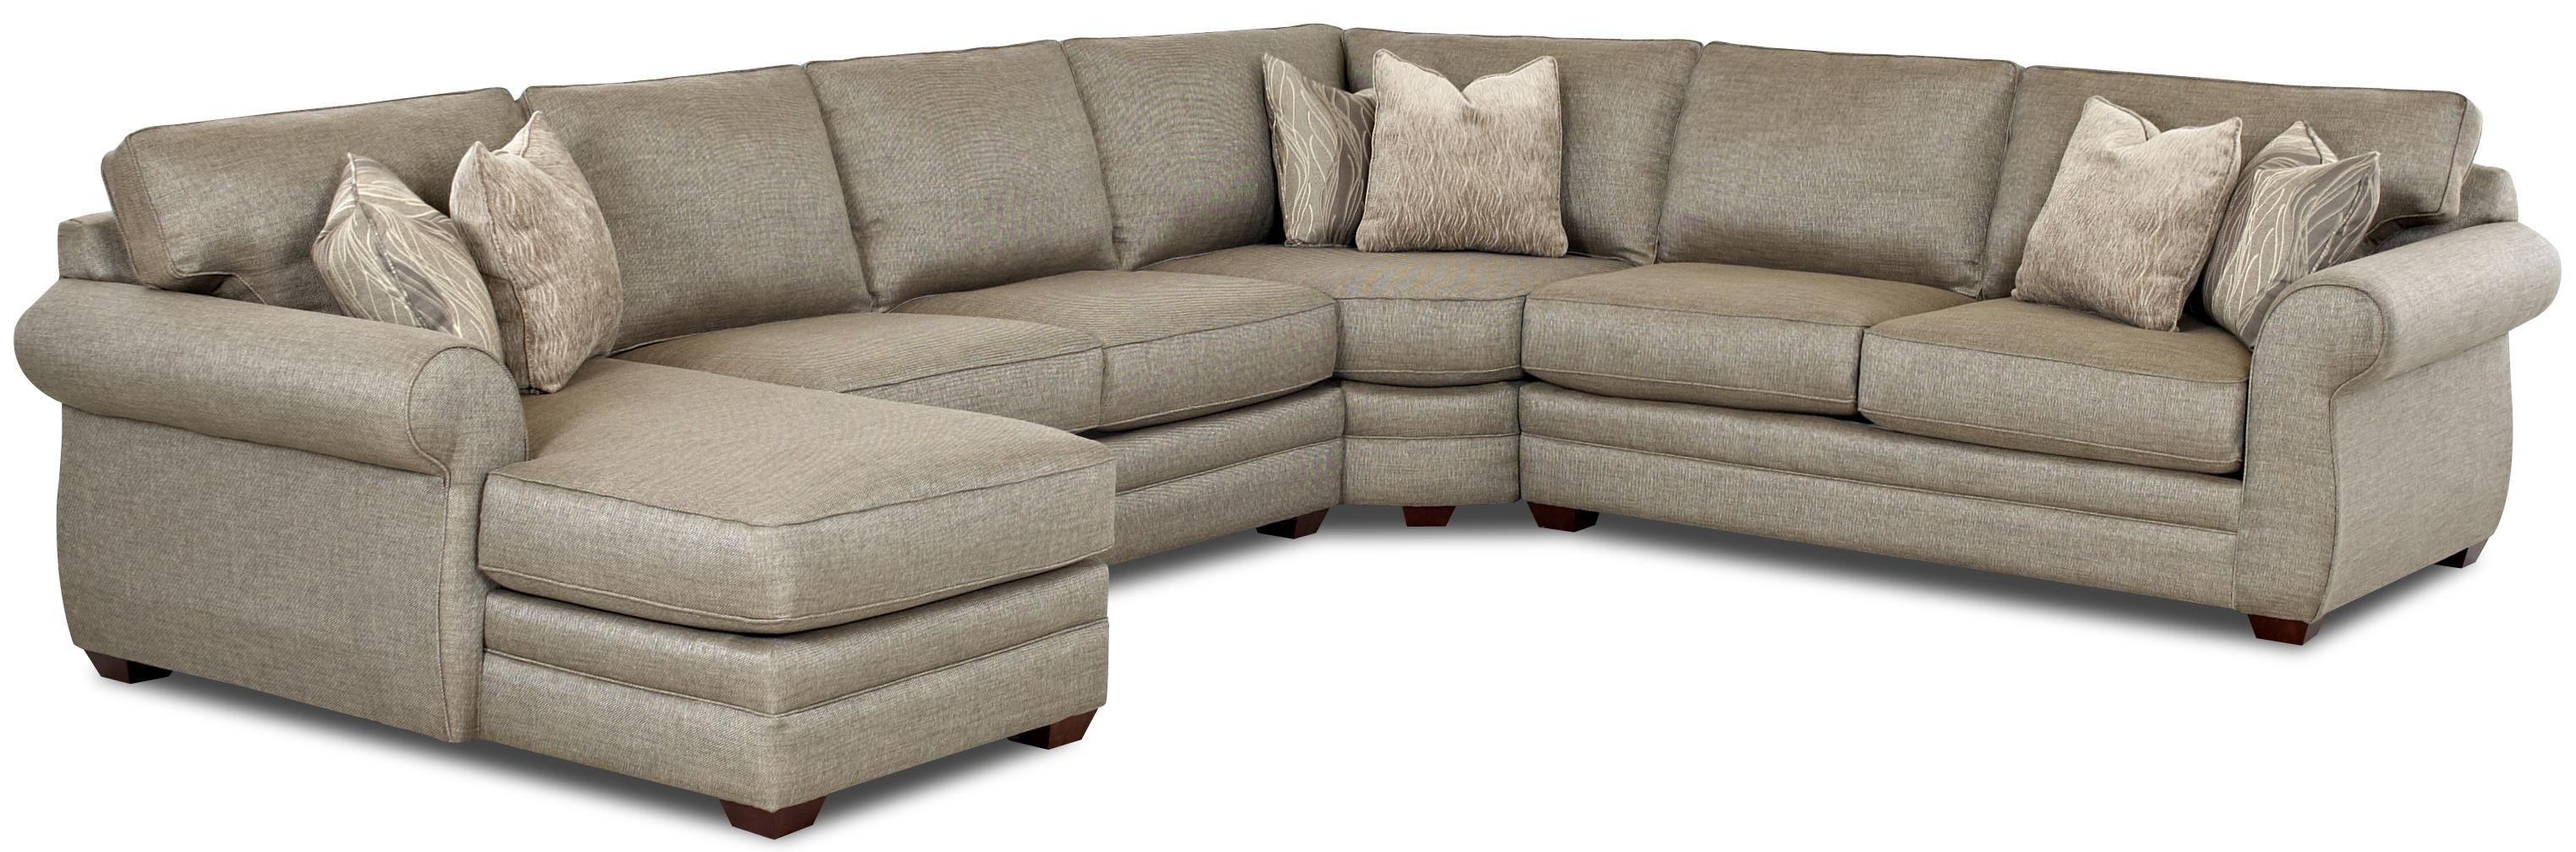 transitional style sectional sofas queen size sofa beds melbourne klaussner clanton with left